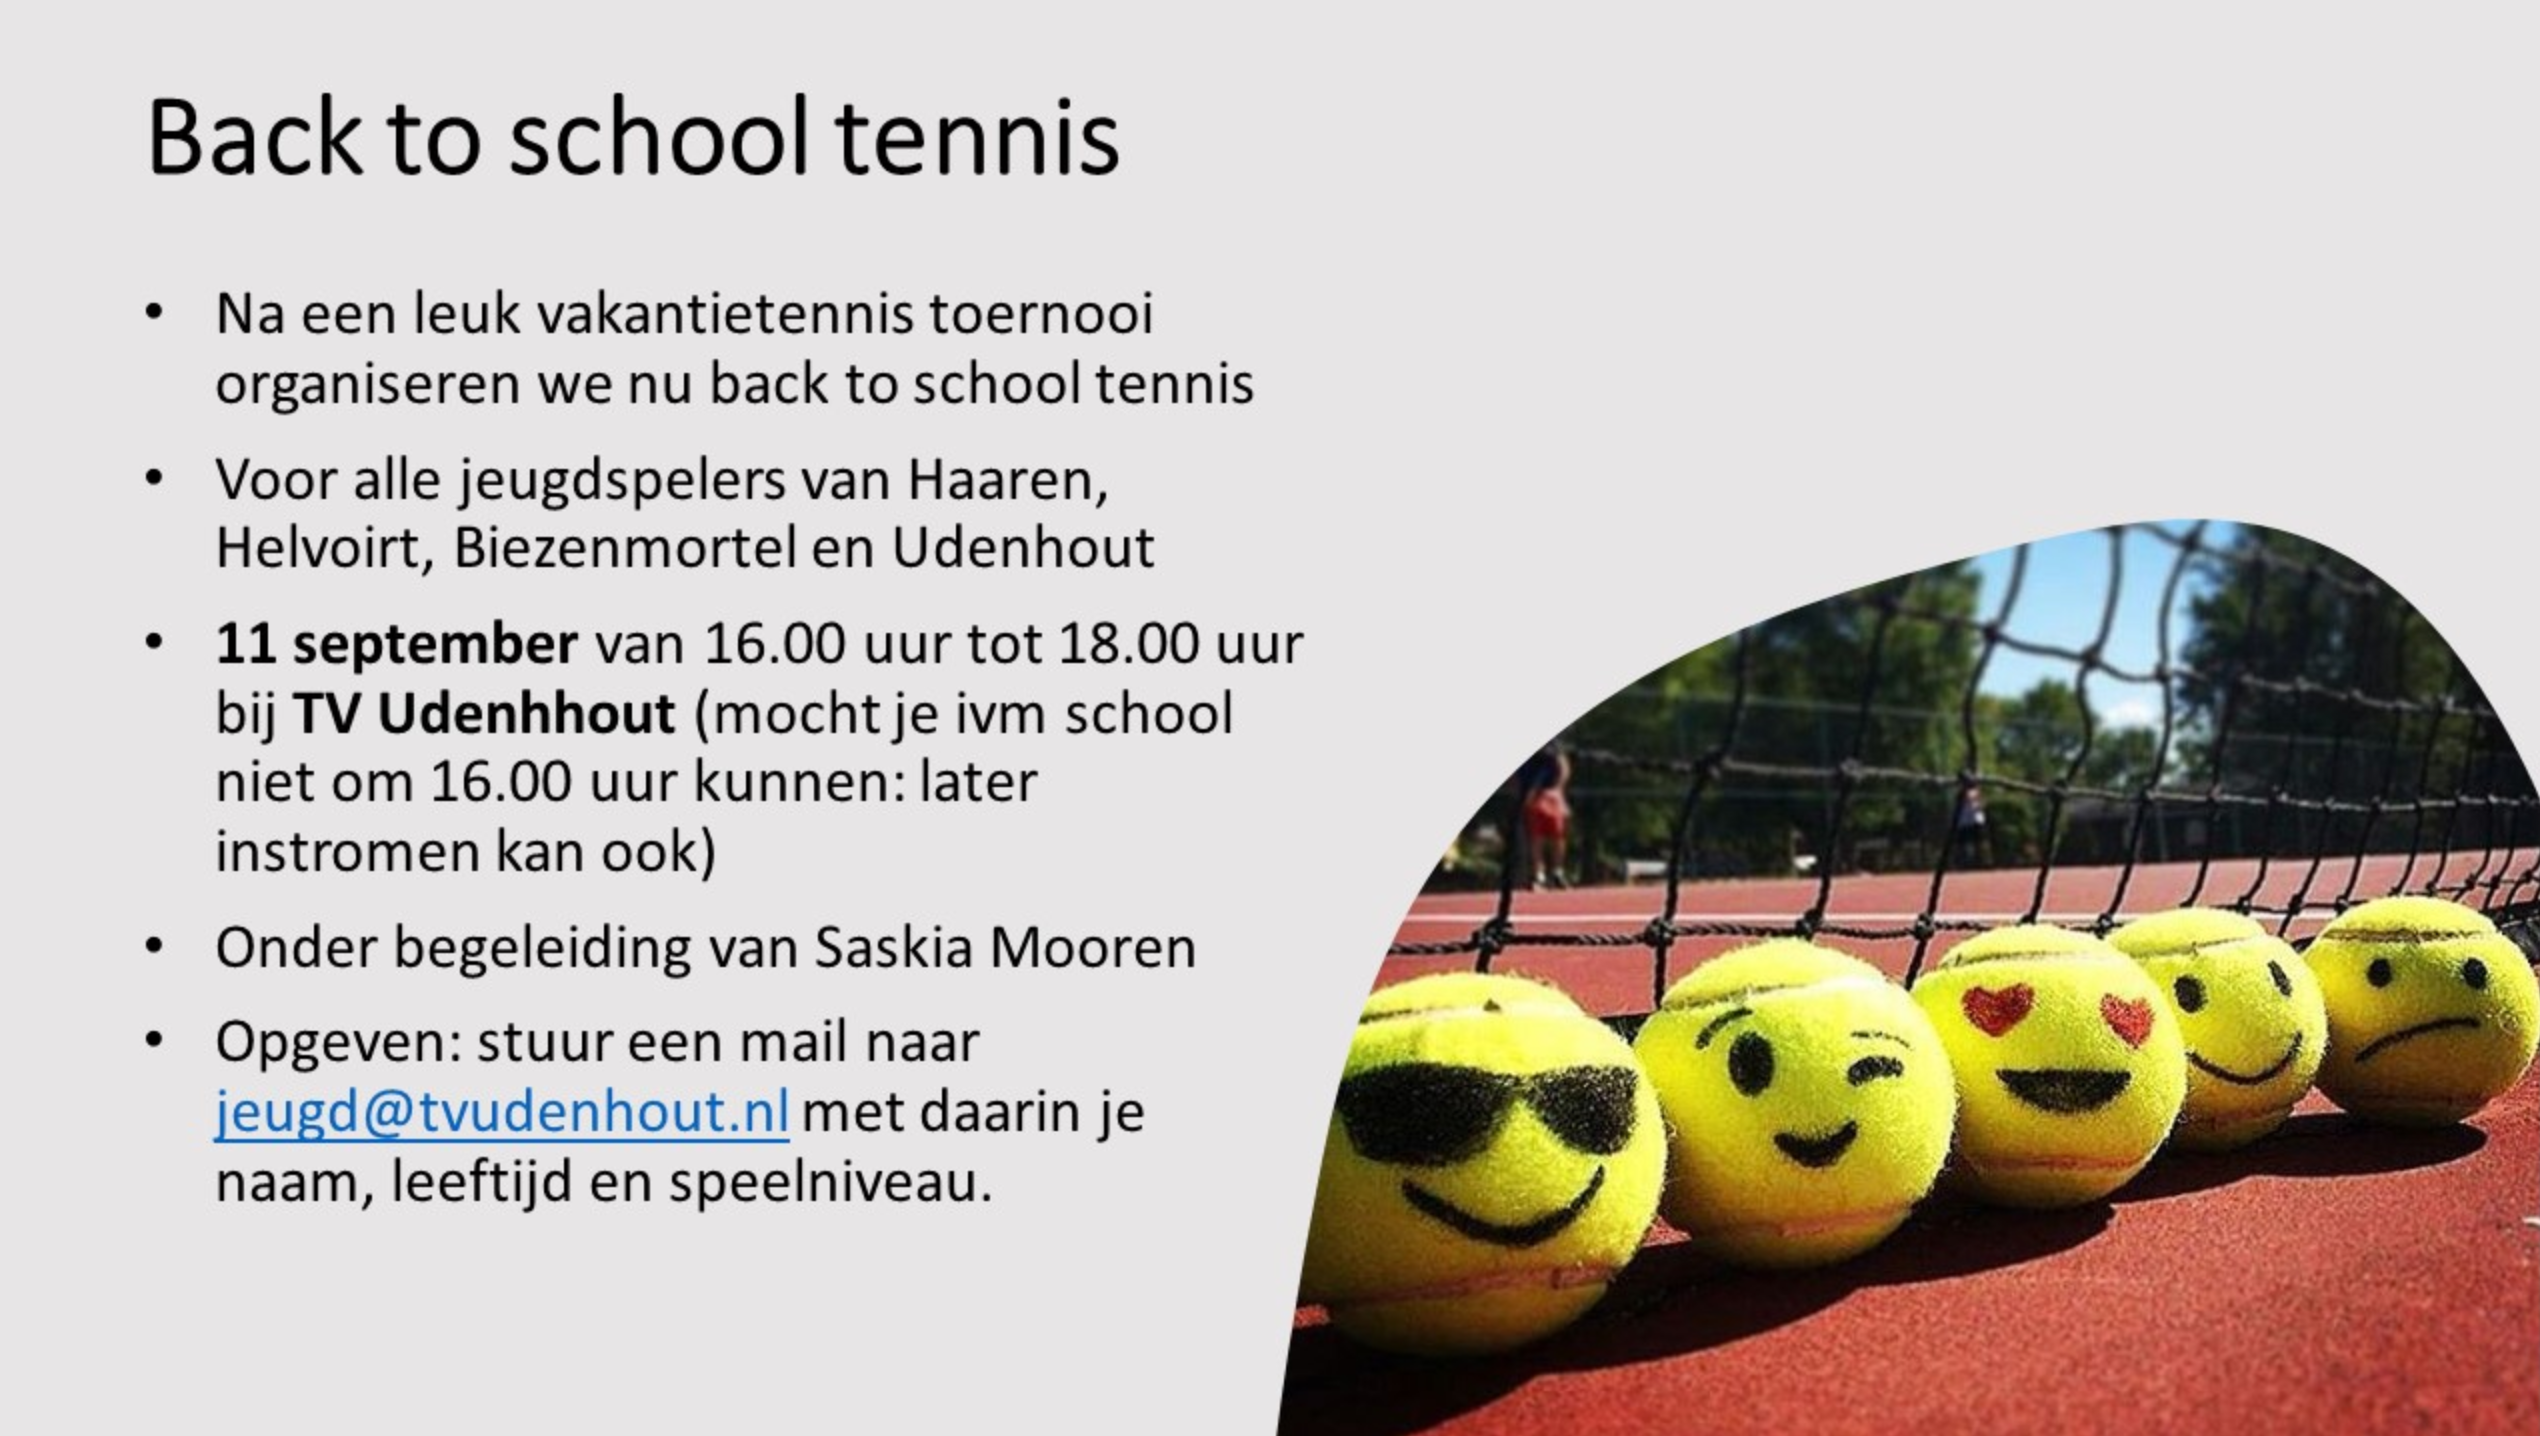 Back to school tennis